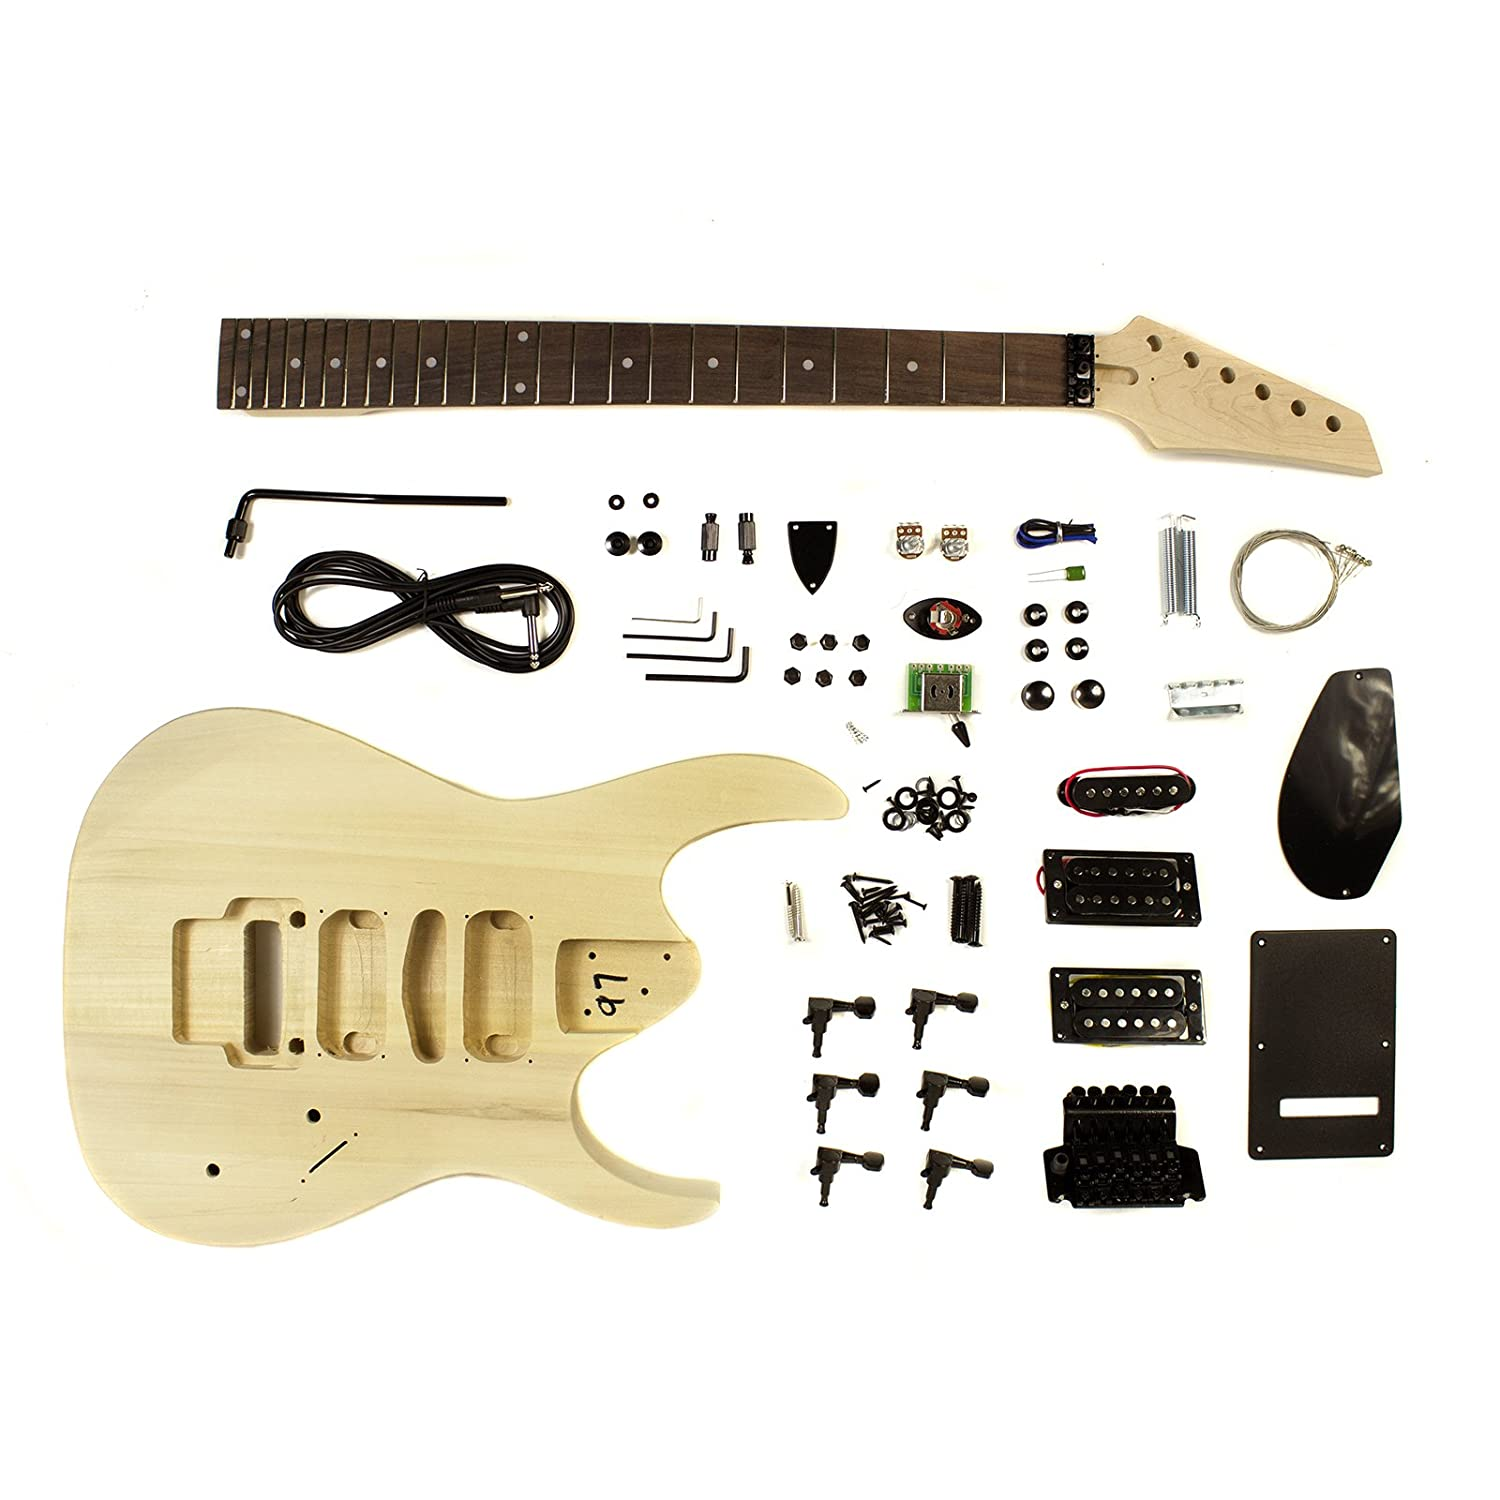 Heavy Metal Electric Guitar Solid Wood Diy Kit Project Double Of Tremolo Get Free Image About Wiring Diagram Locking Musical Instruments